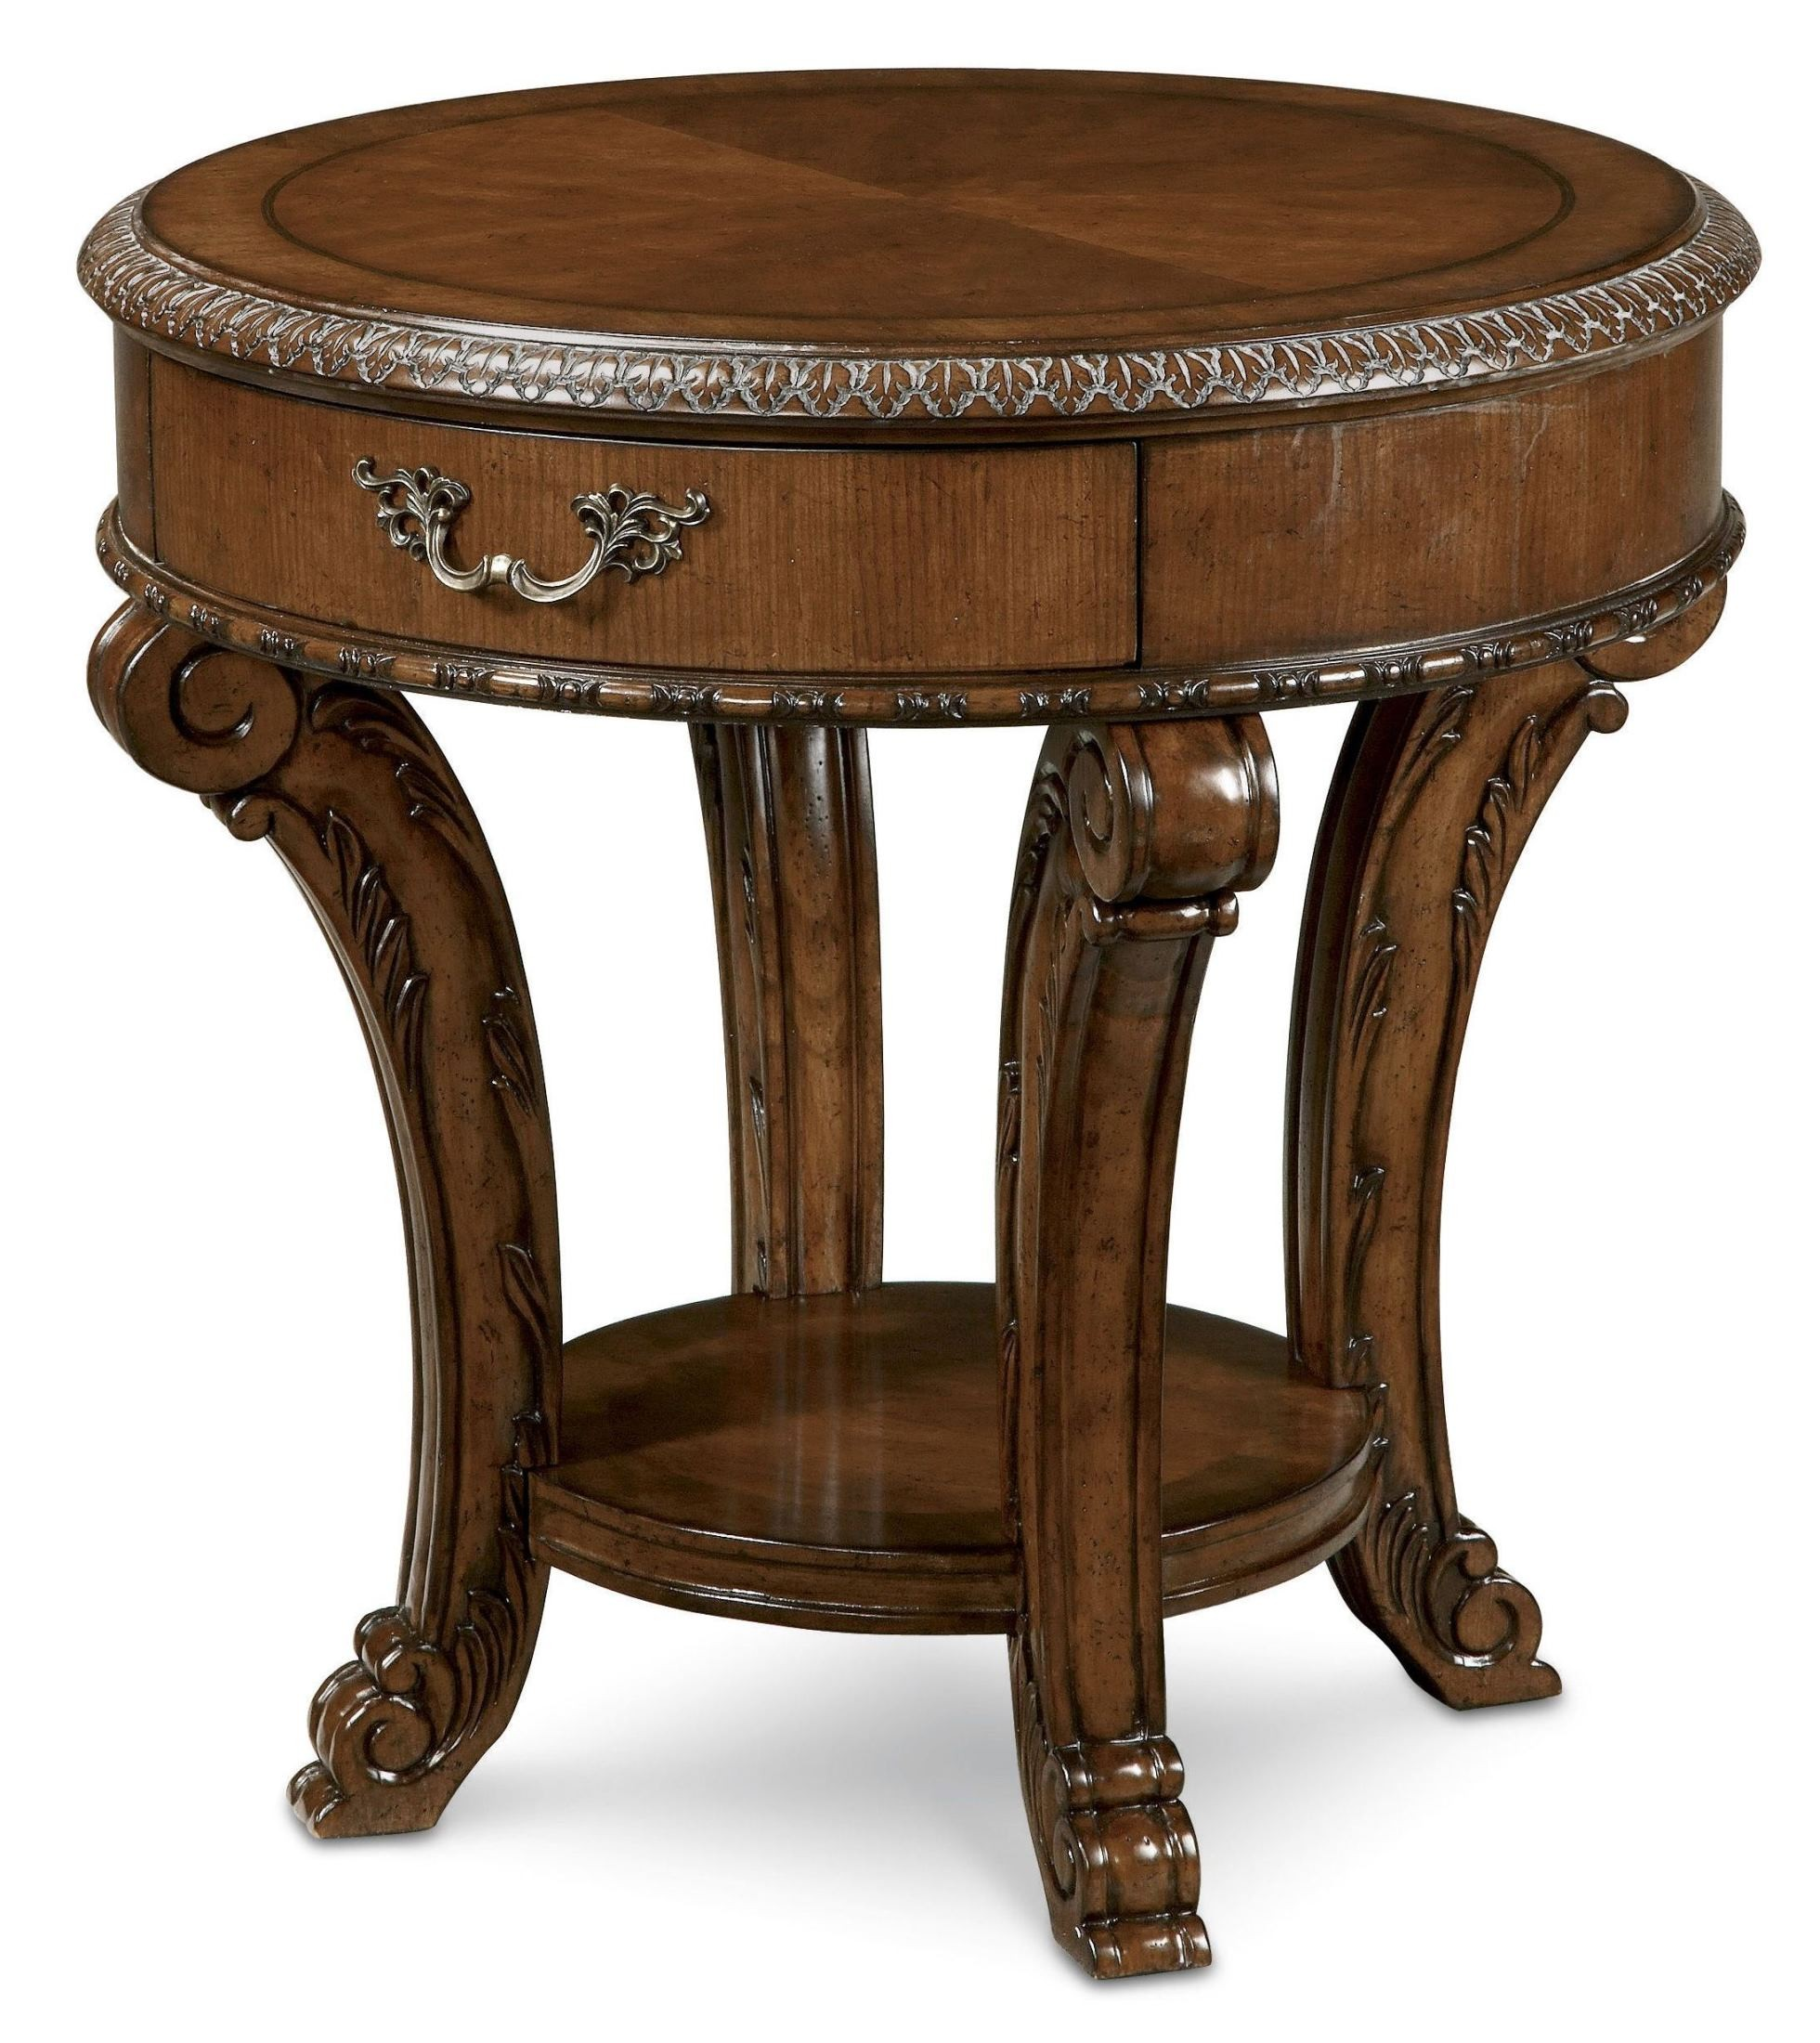 Old world round end table from art 143303 2606 coleman for Round end tables